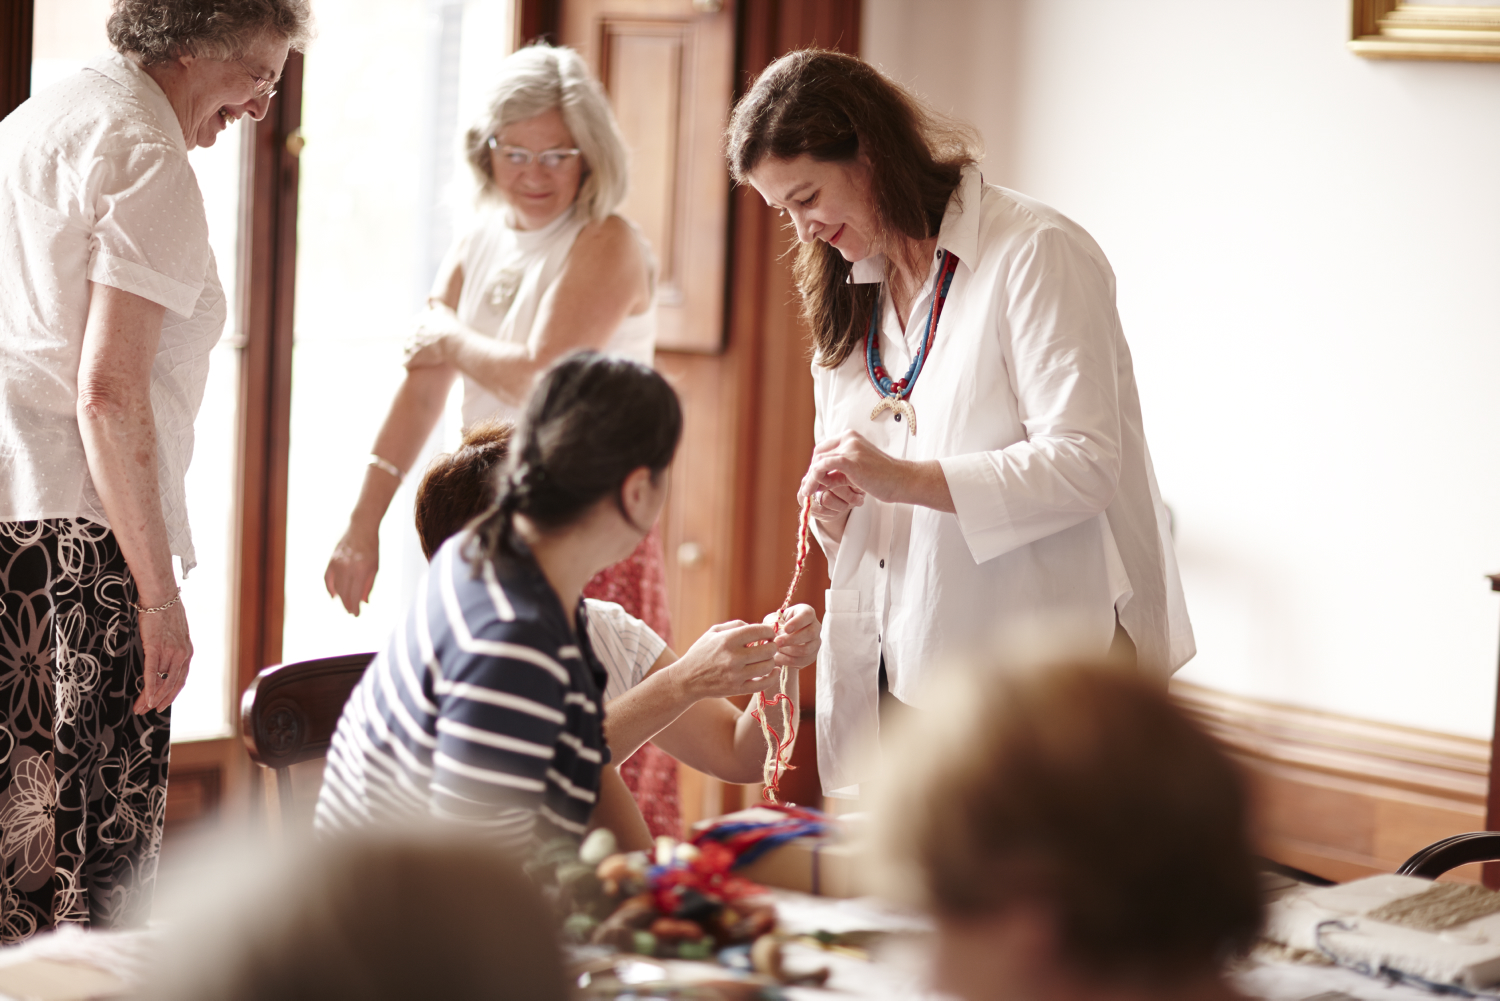 Woman in white standing with two other women at dining table assisting two seated women with threads.